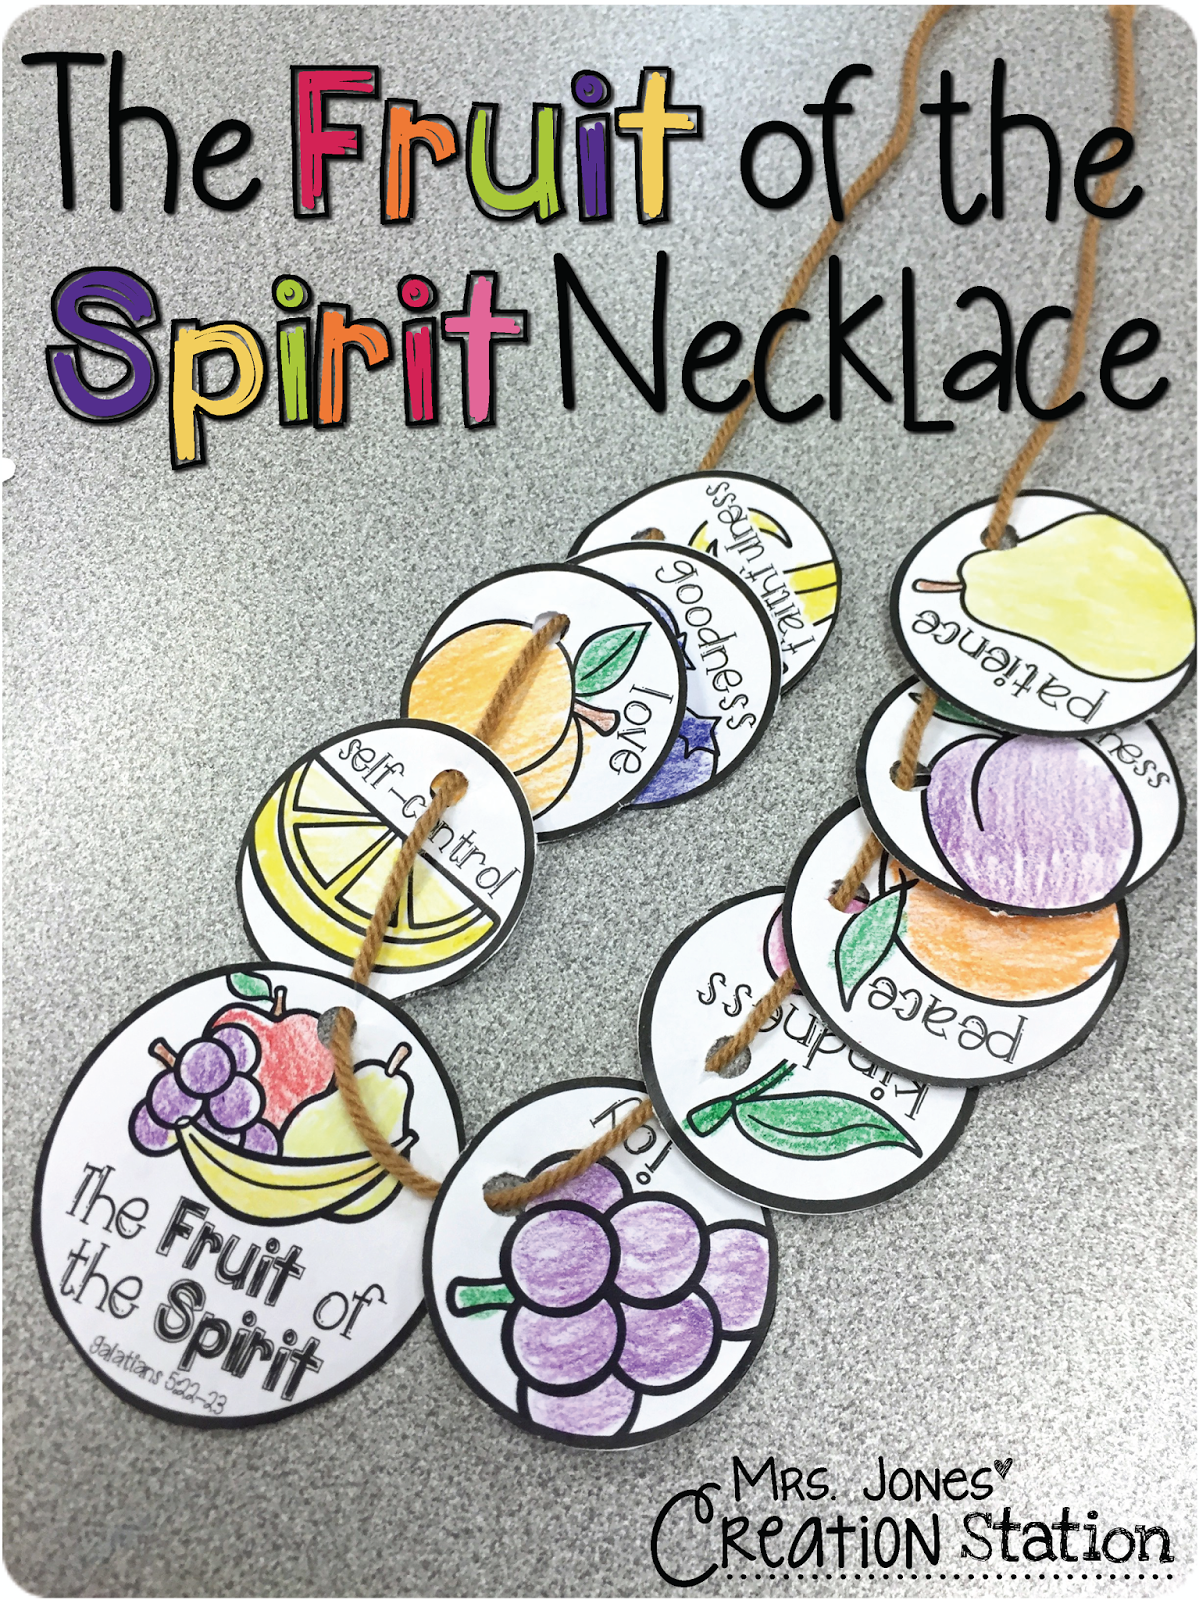 photograph relating to Fruits of the Spirit Printable named The Fruit of the Spirit Necklace - Mrs. Jones Production Station